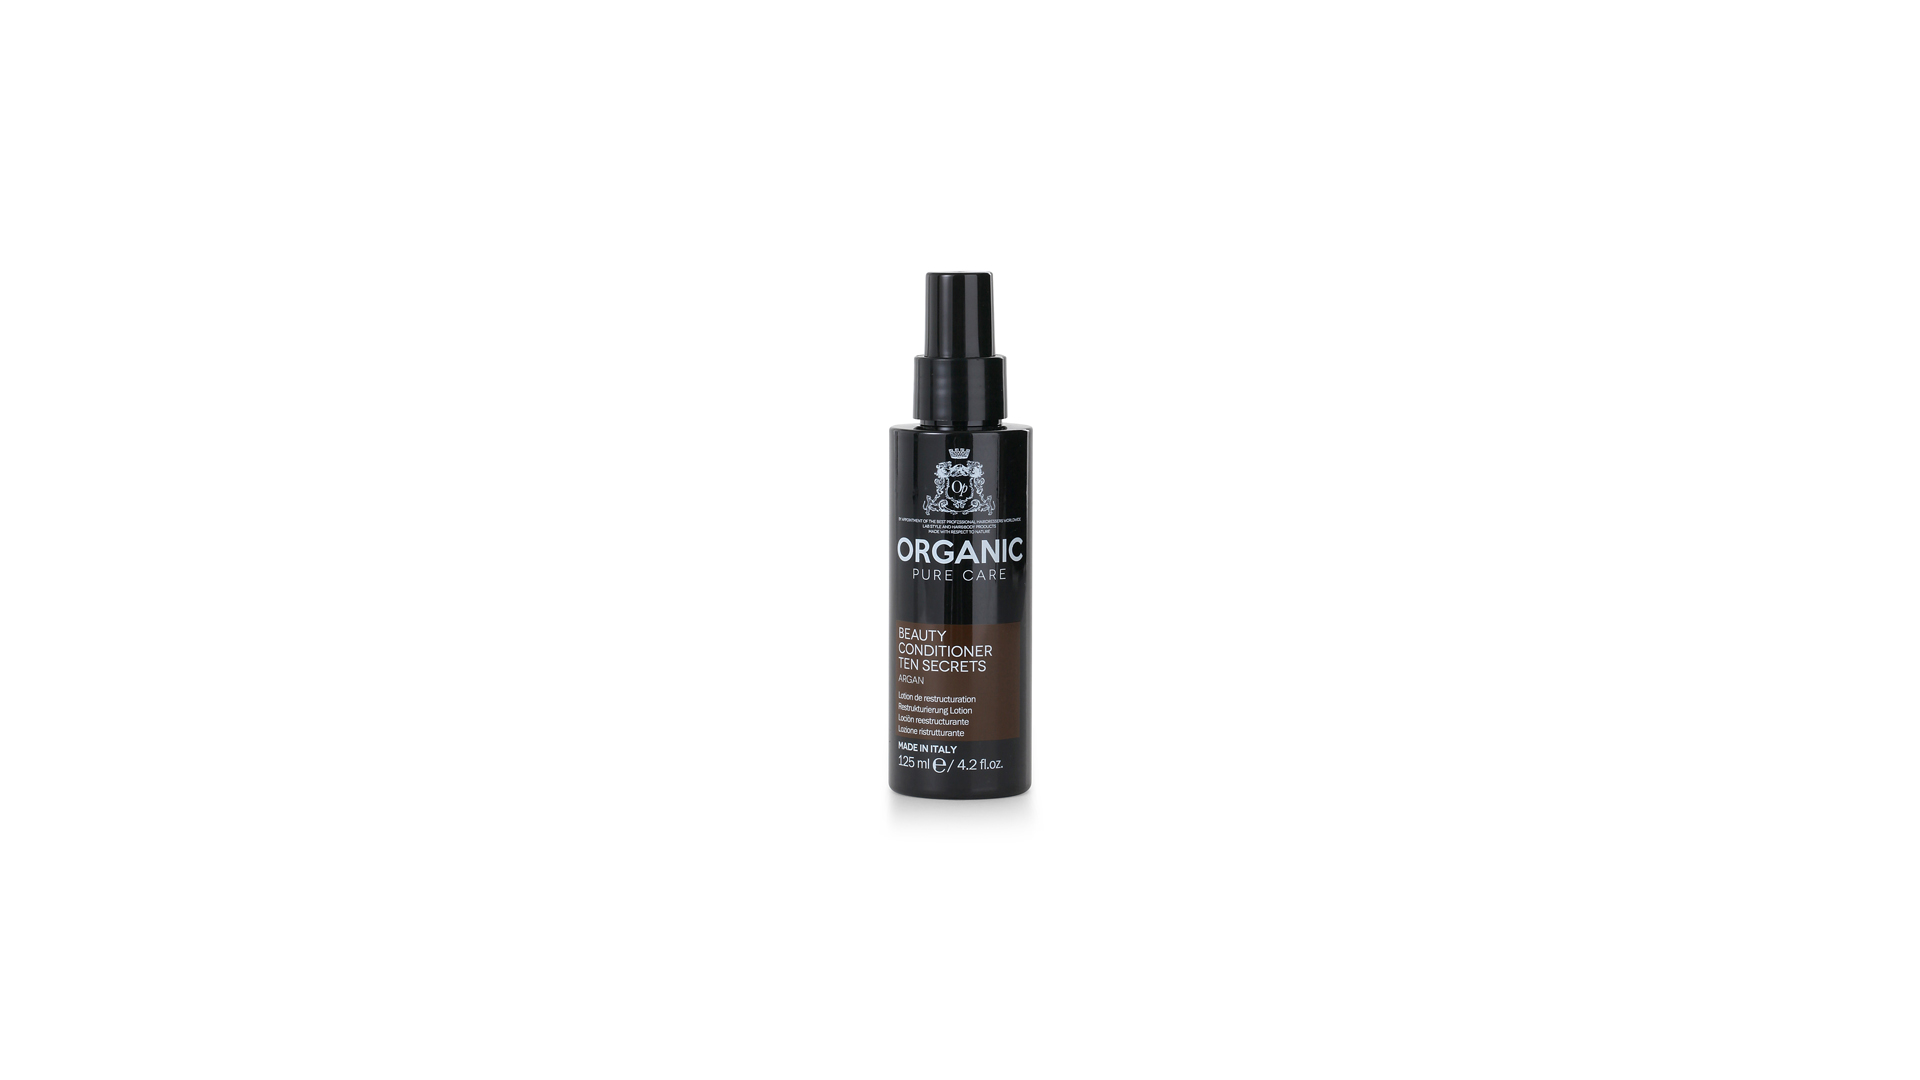 03_ArganBeautyConditionerTenSecrets_125ml